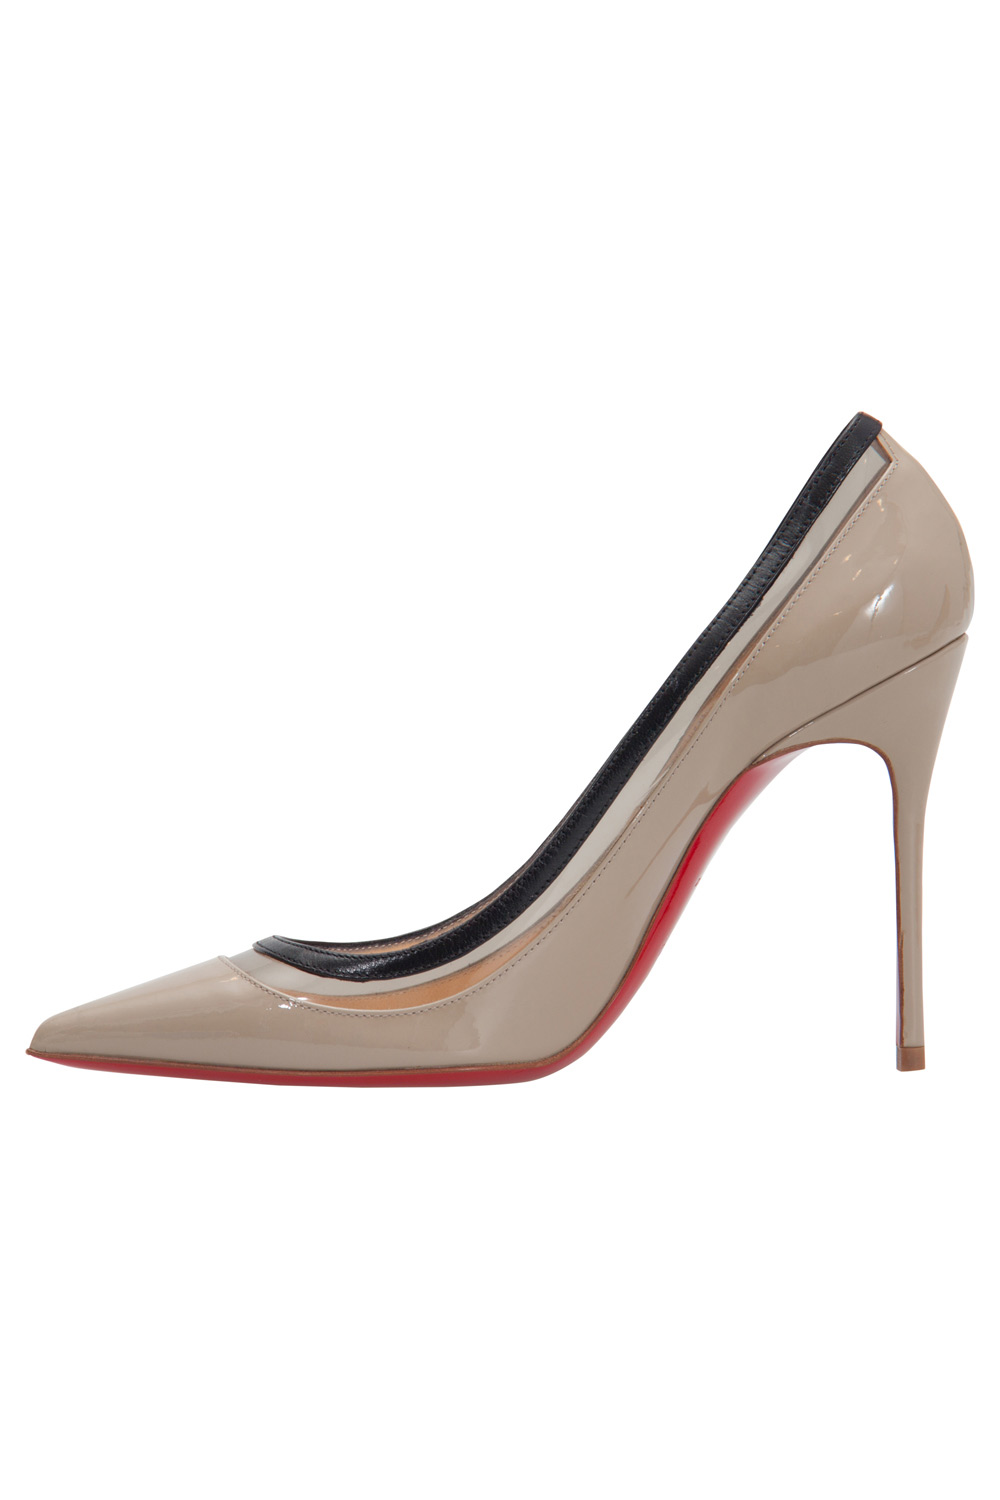 hot sale online 46569 3f8ae Christian Louboutin Beige Patent Leather And PVC Paulina Pointed Toe Pumps  Size 36